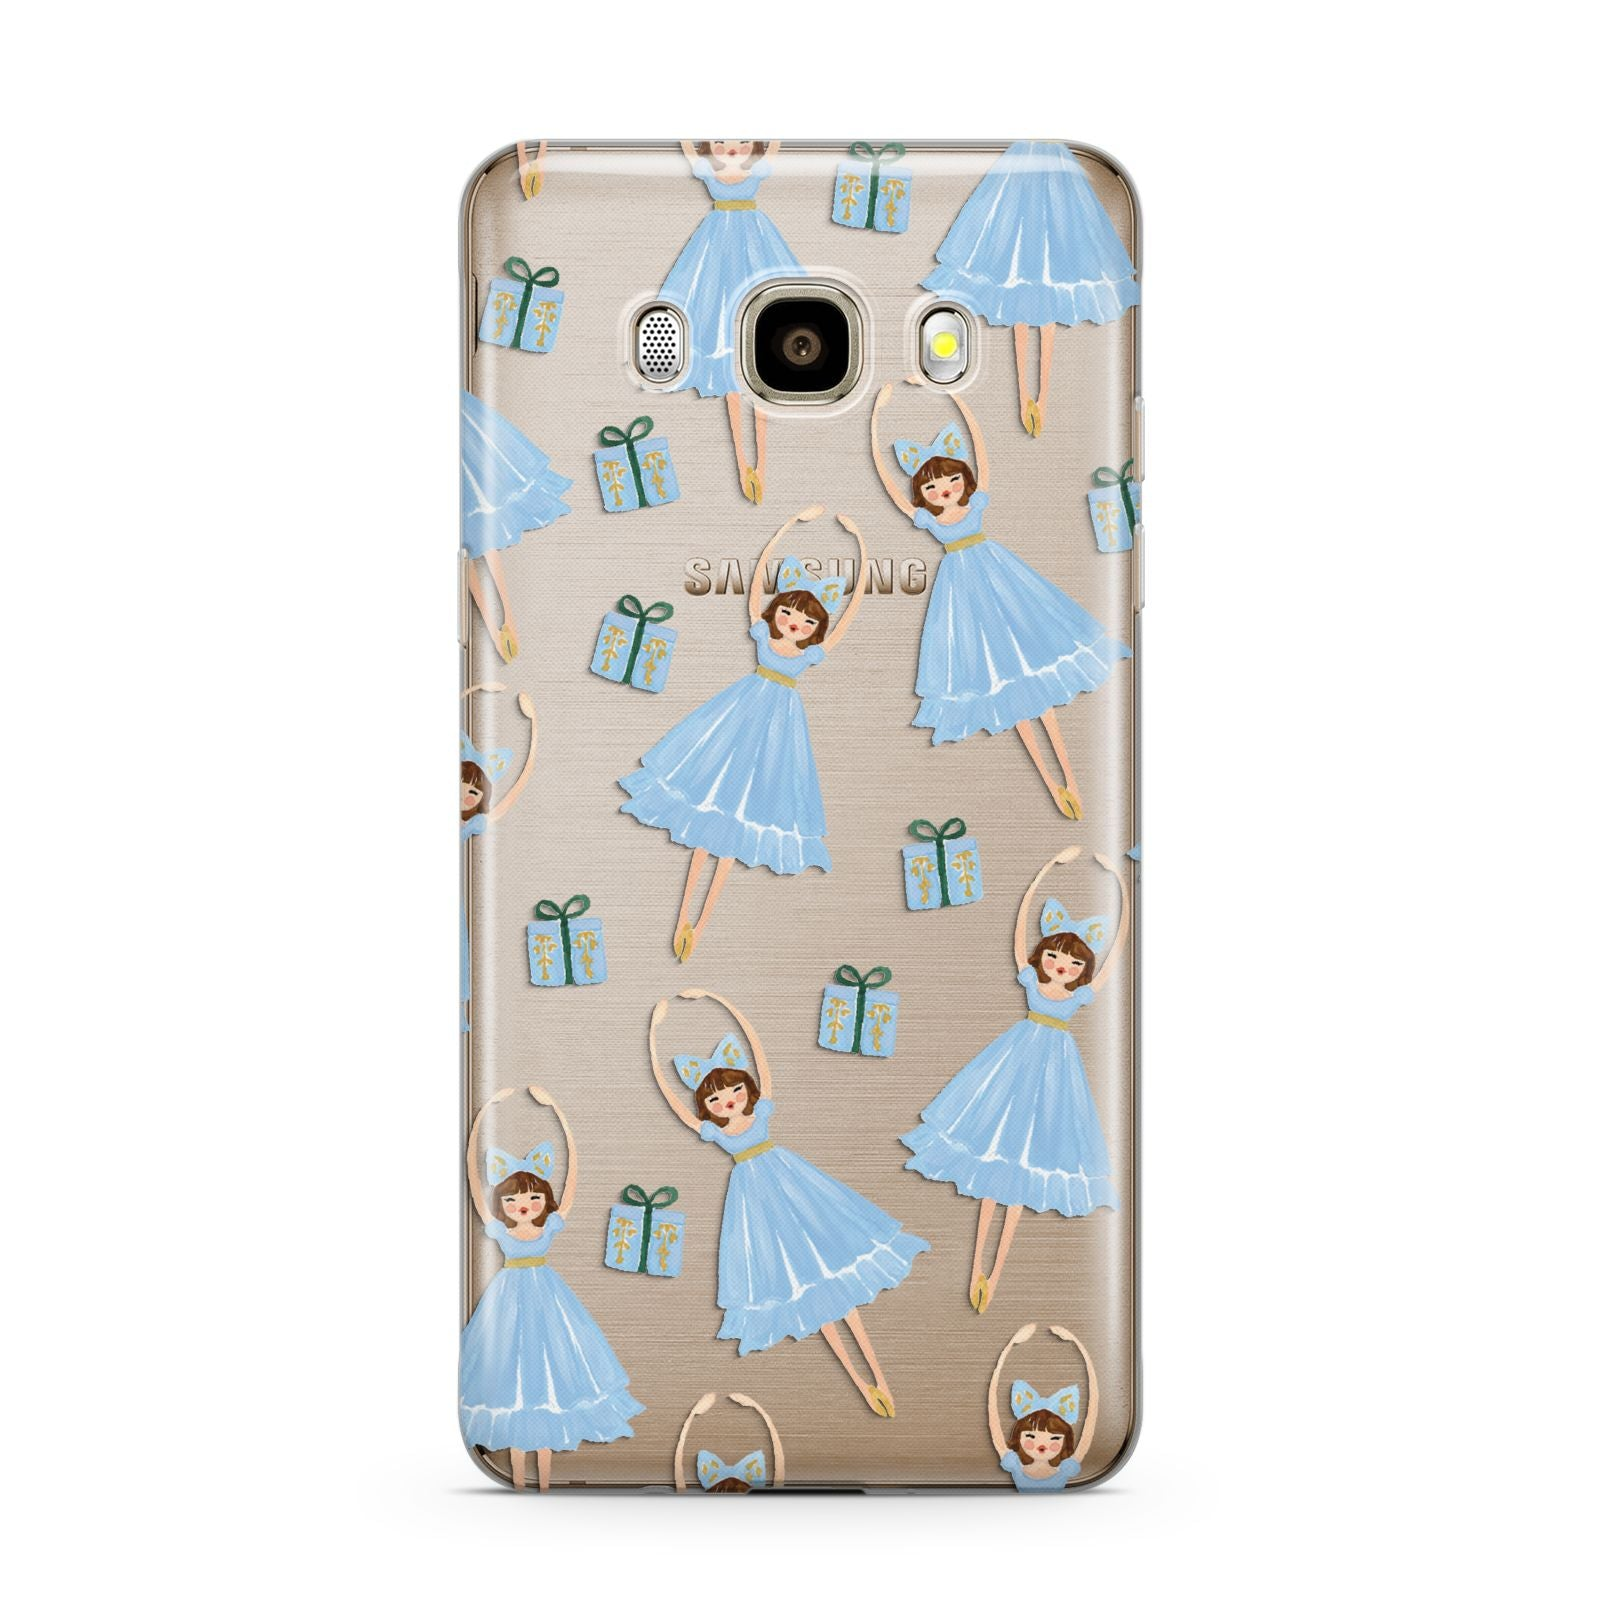 Christmas ballerina present Samsung Galaxy J7 2016 Case on gold phone